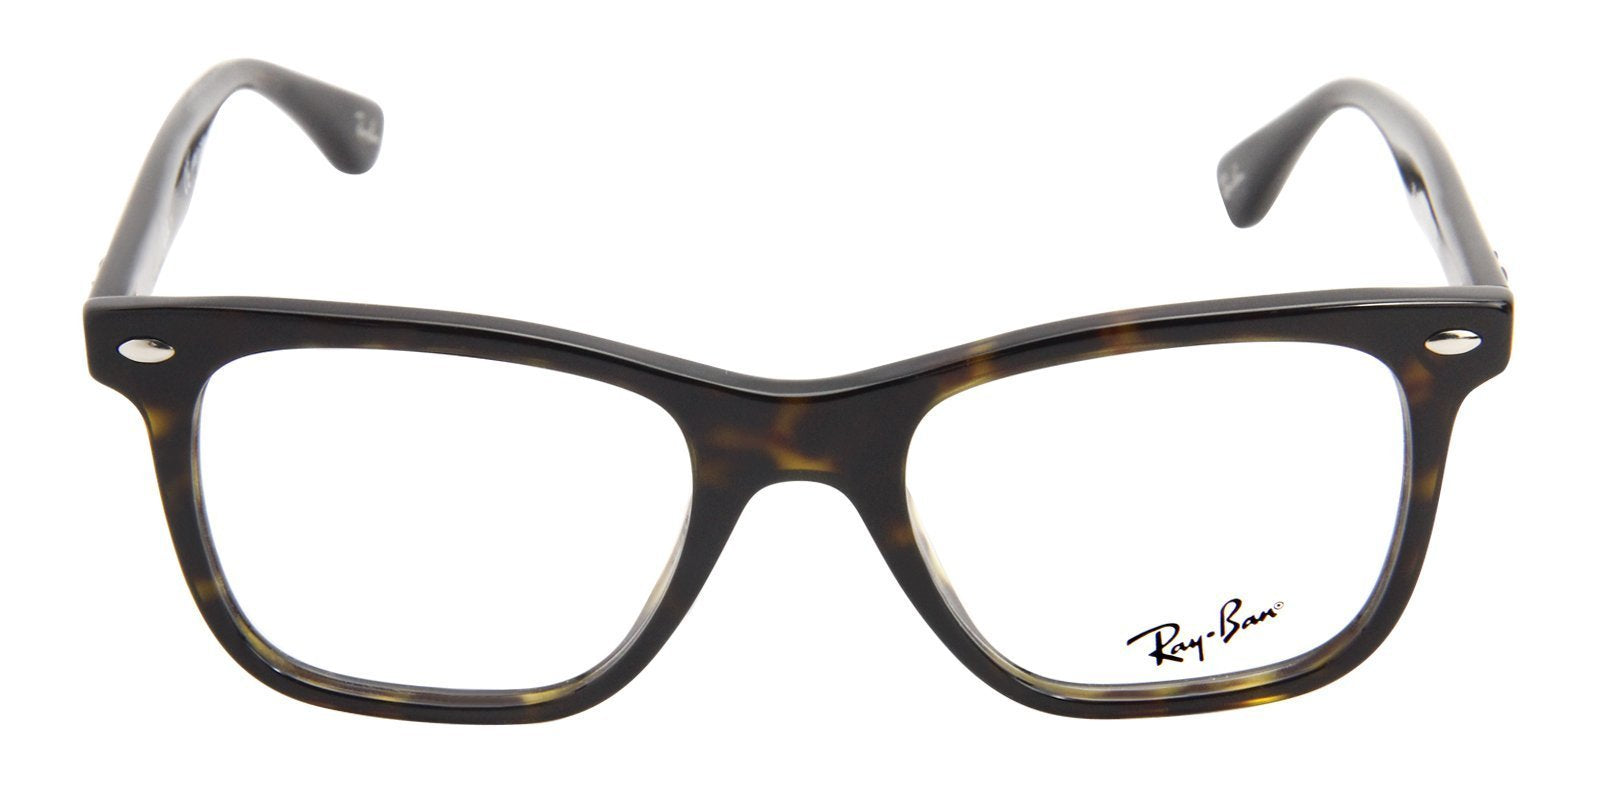 Ray Ban Rx - RX5248 Tortoise Rectangular Men Eyeglasses - 49mm-Eyeglasses-Designer Eyes